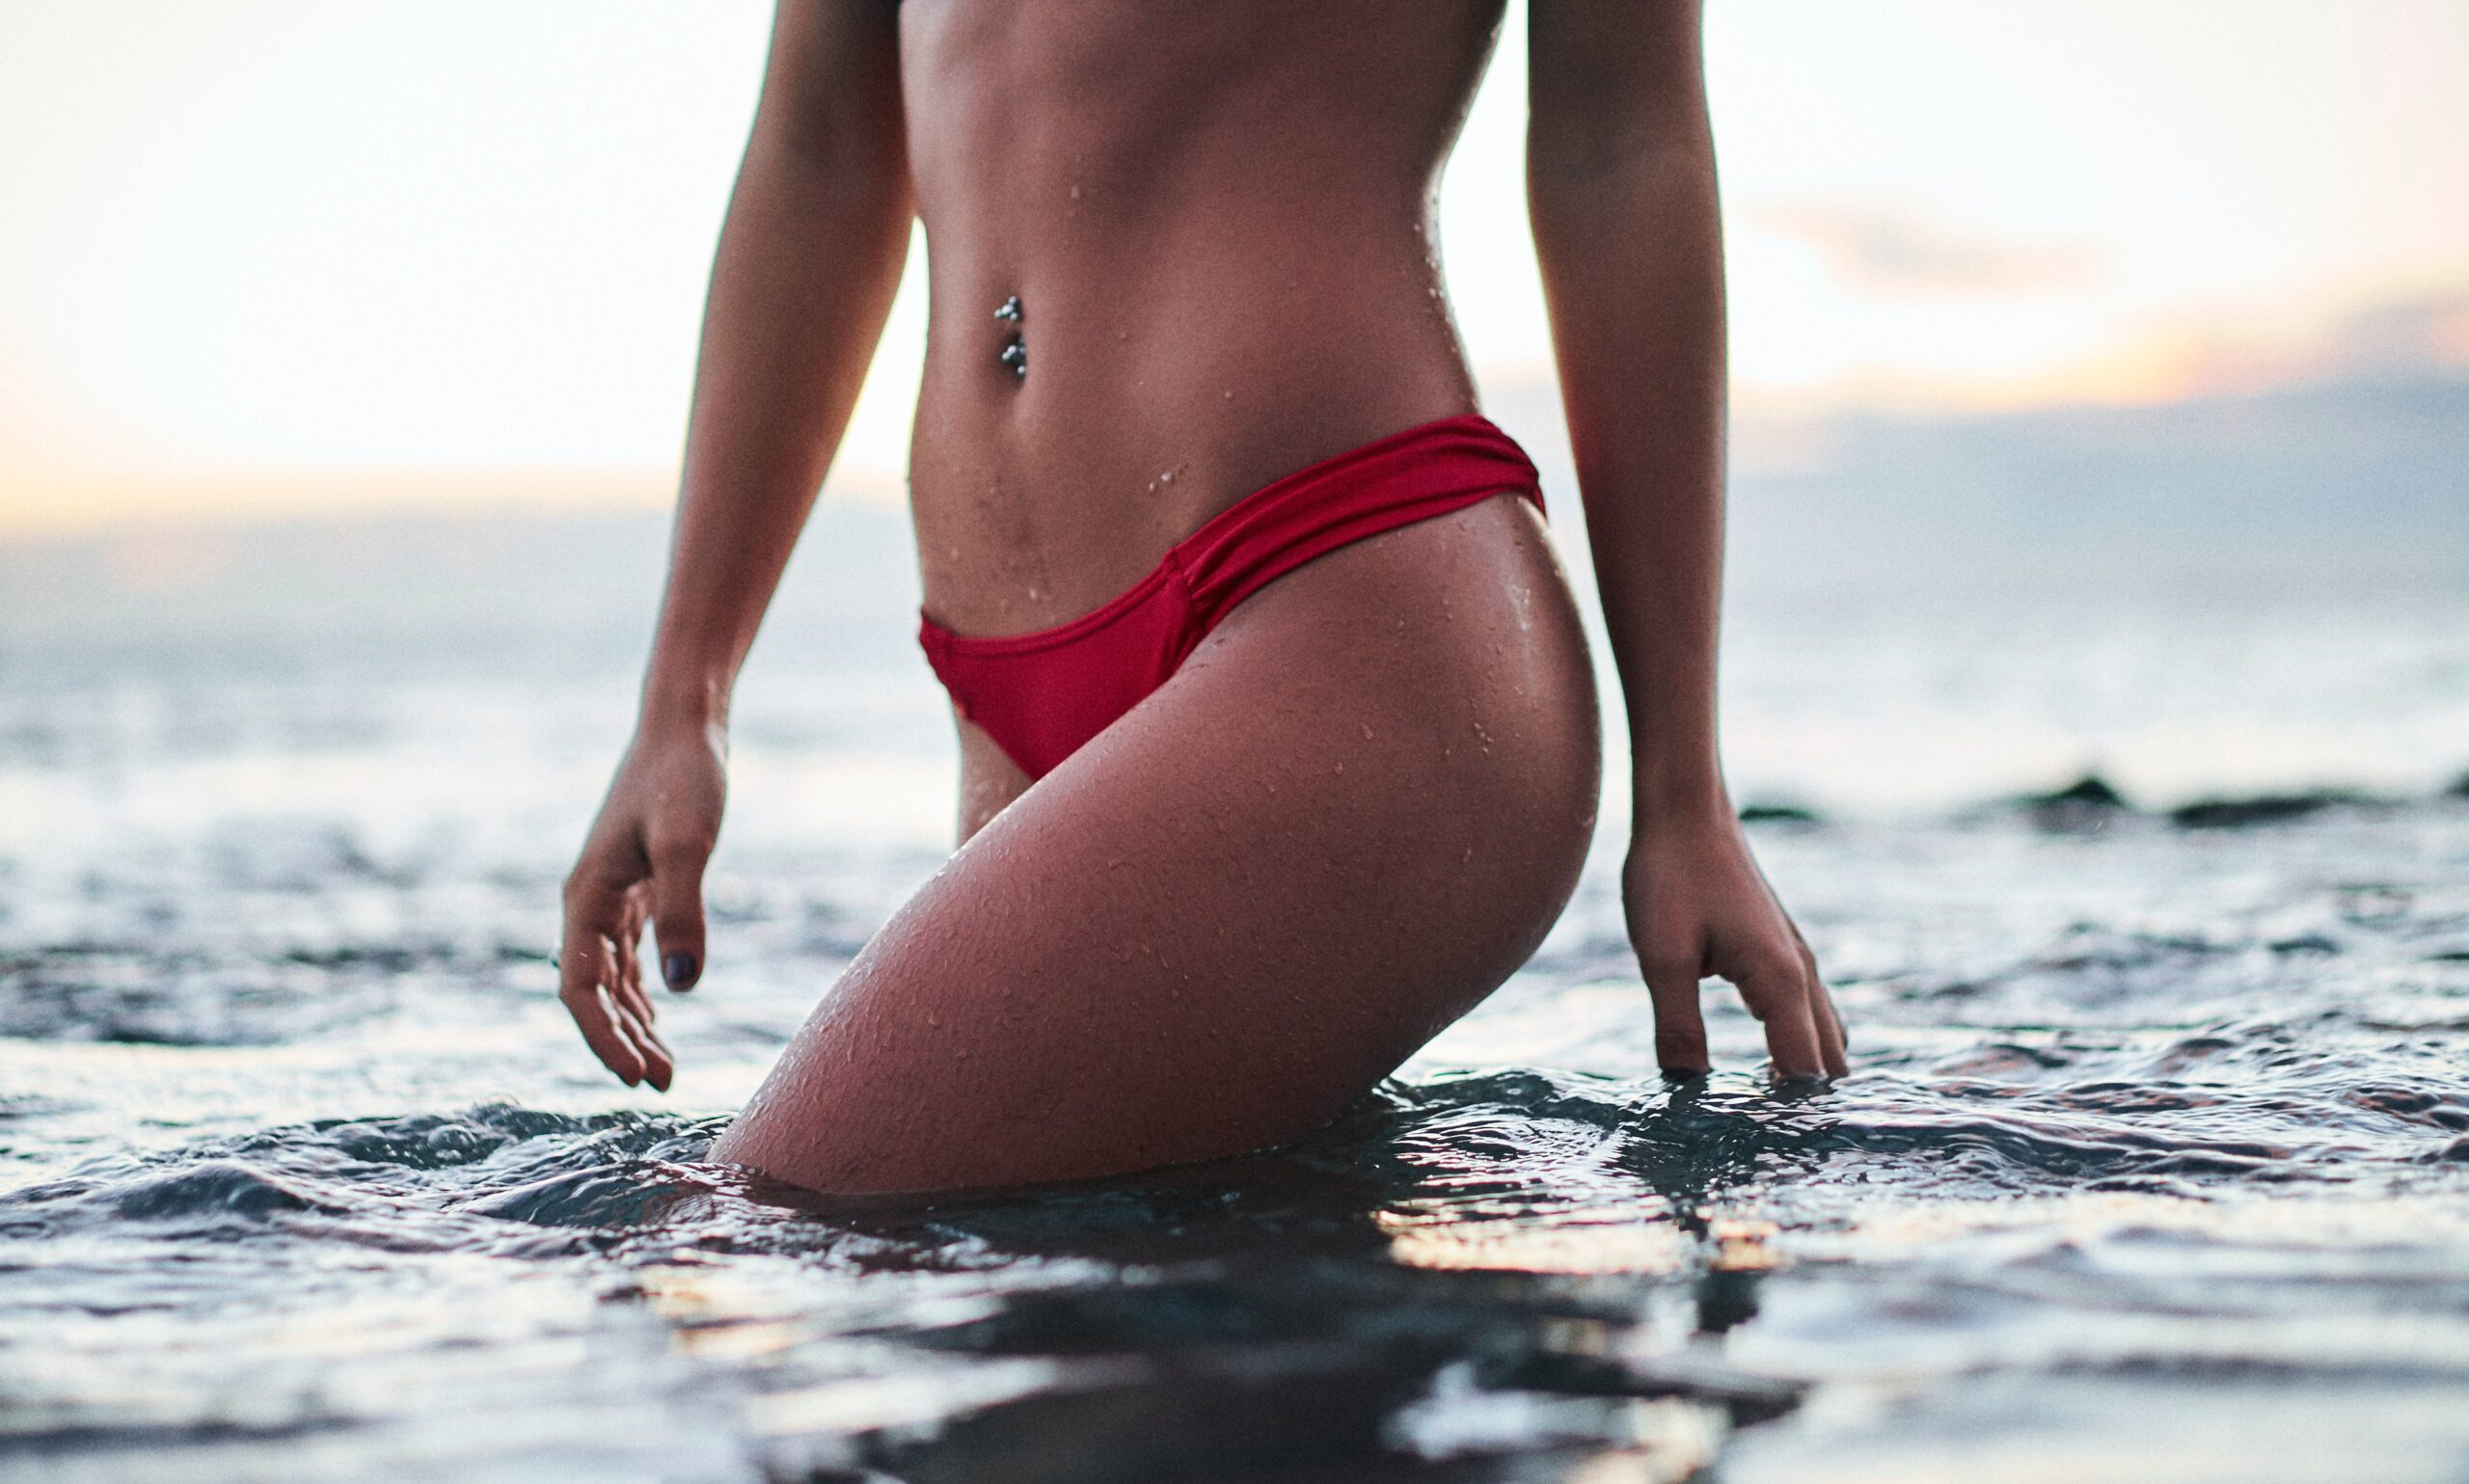 coolsculpting is better than liposuction